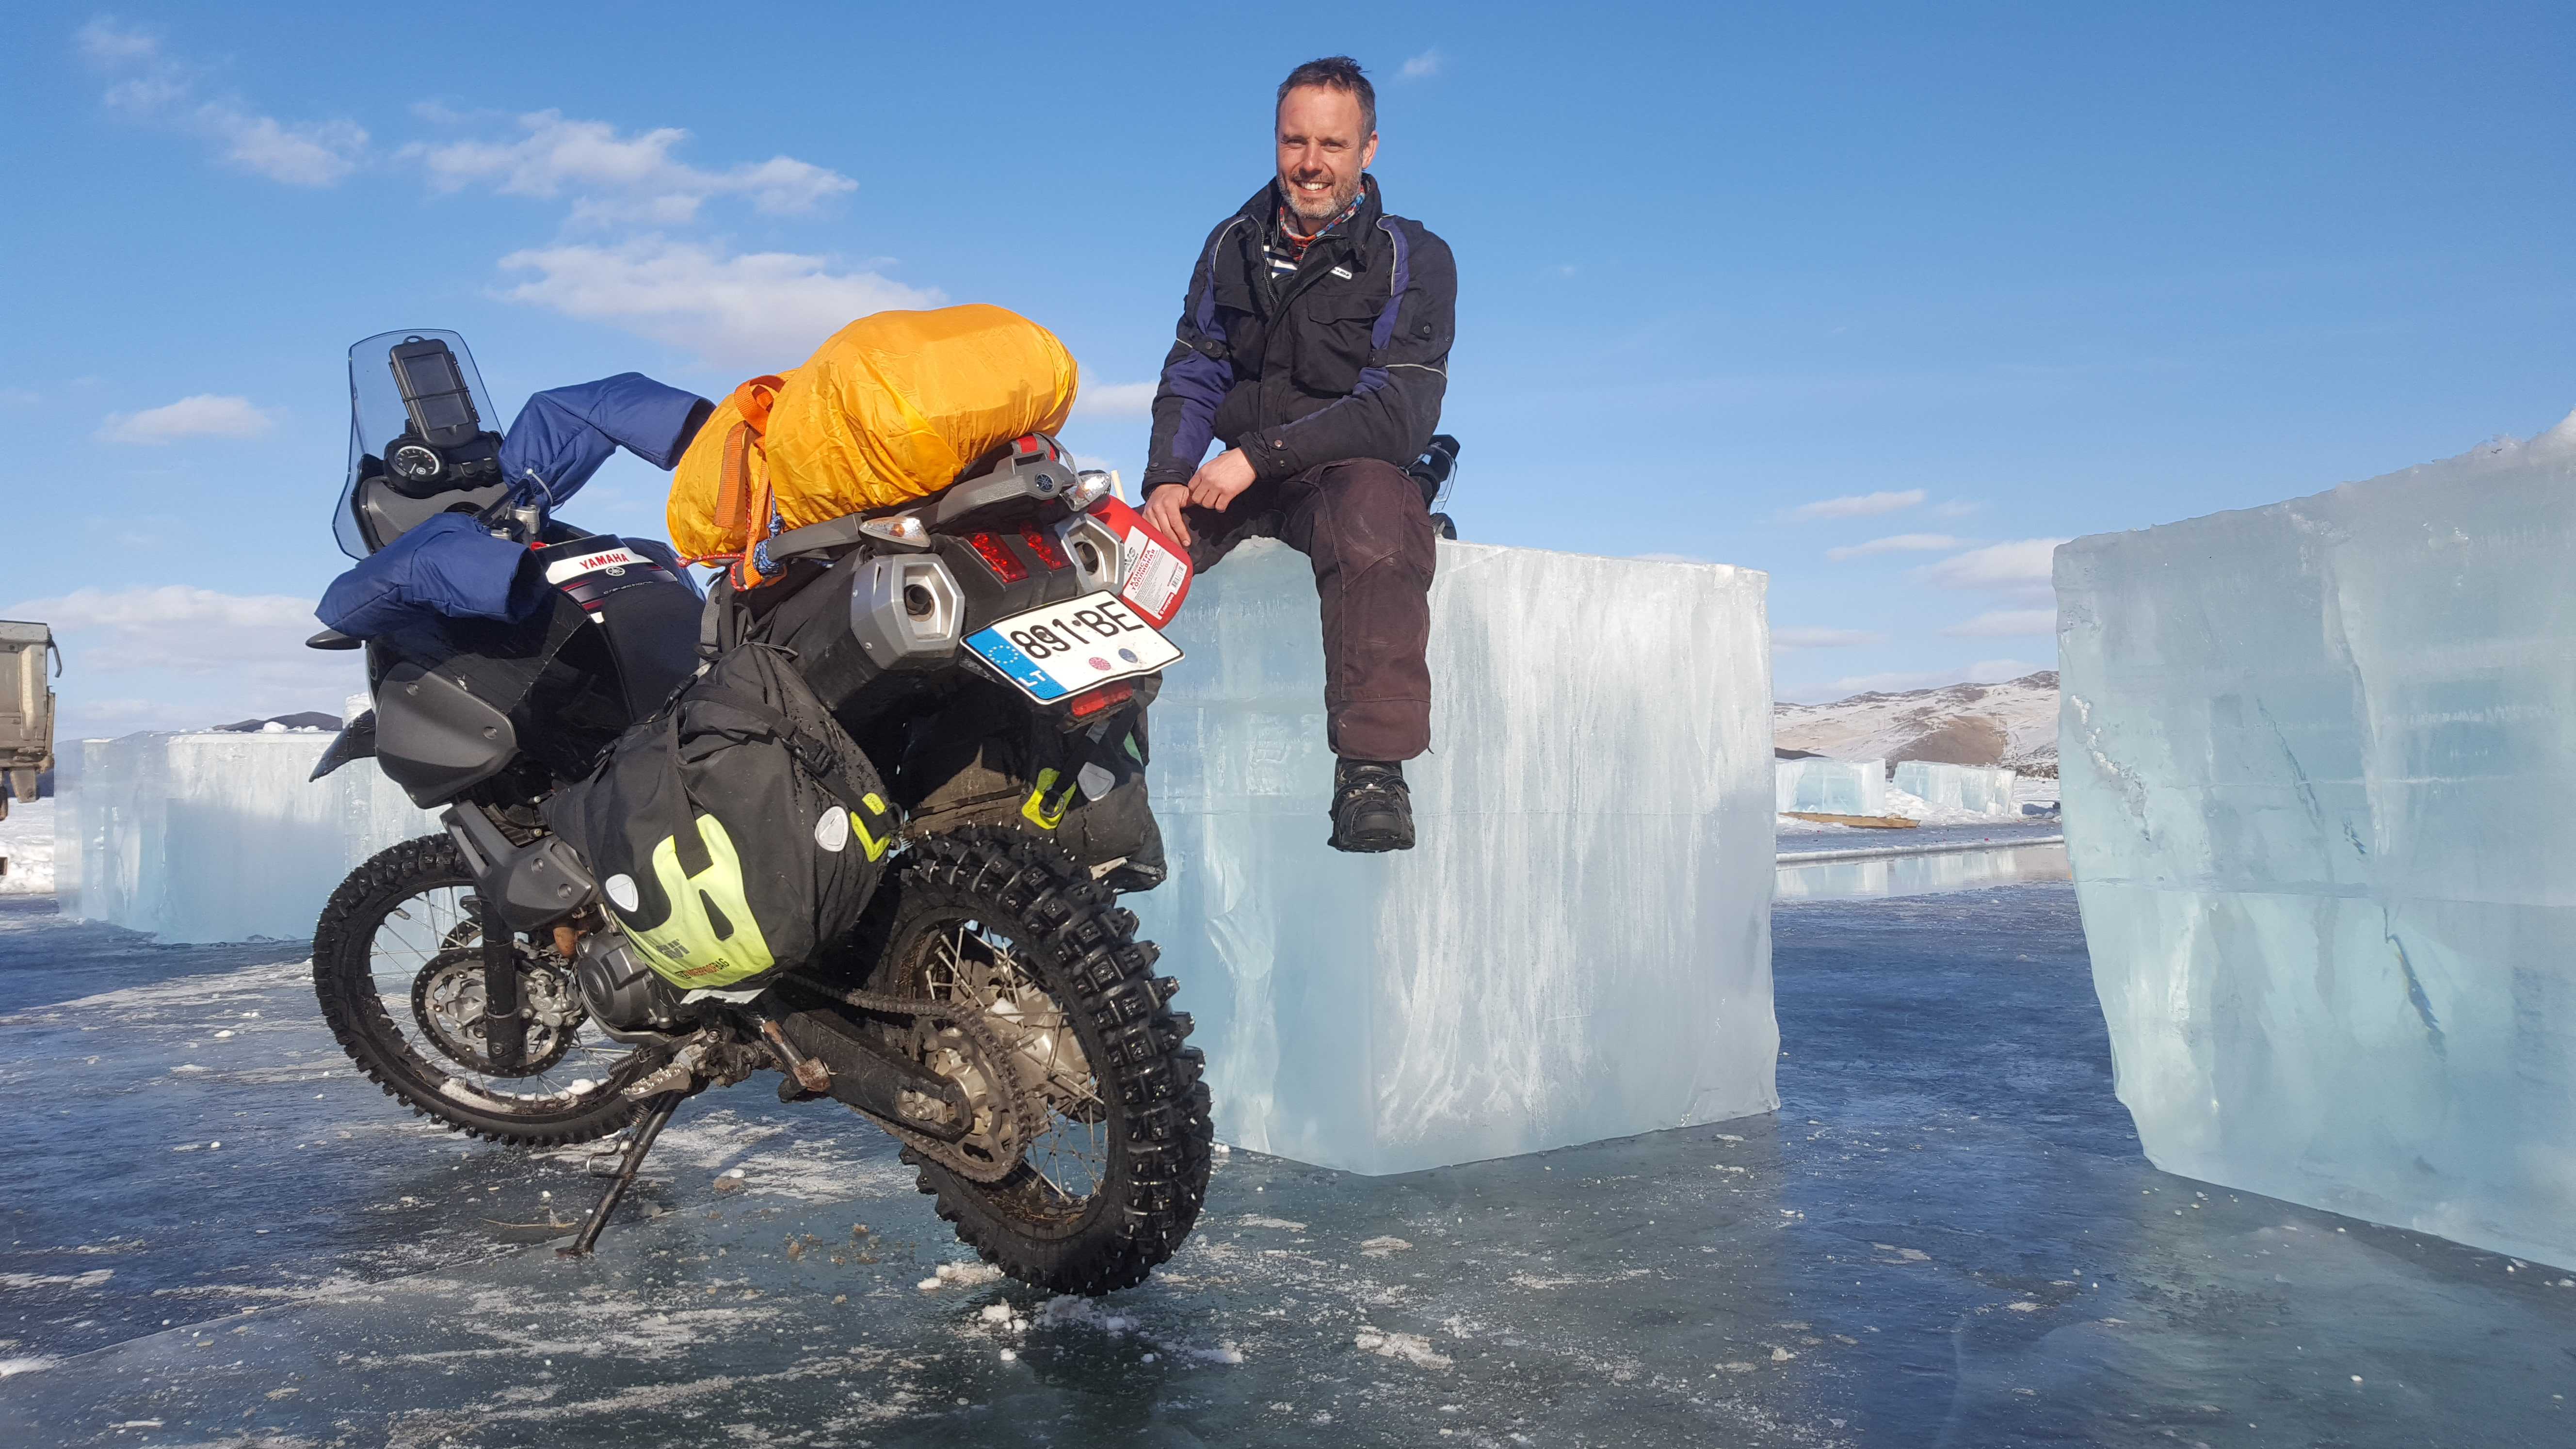 Karolis Mieliauskas on his solo motorcycle ride over the frozen Lake Baikal